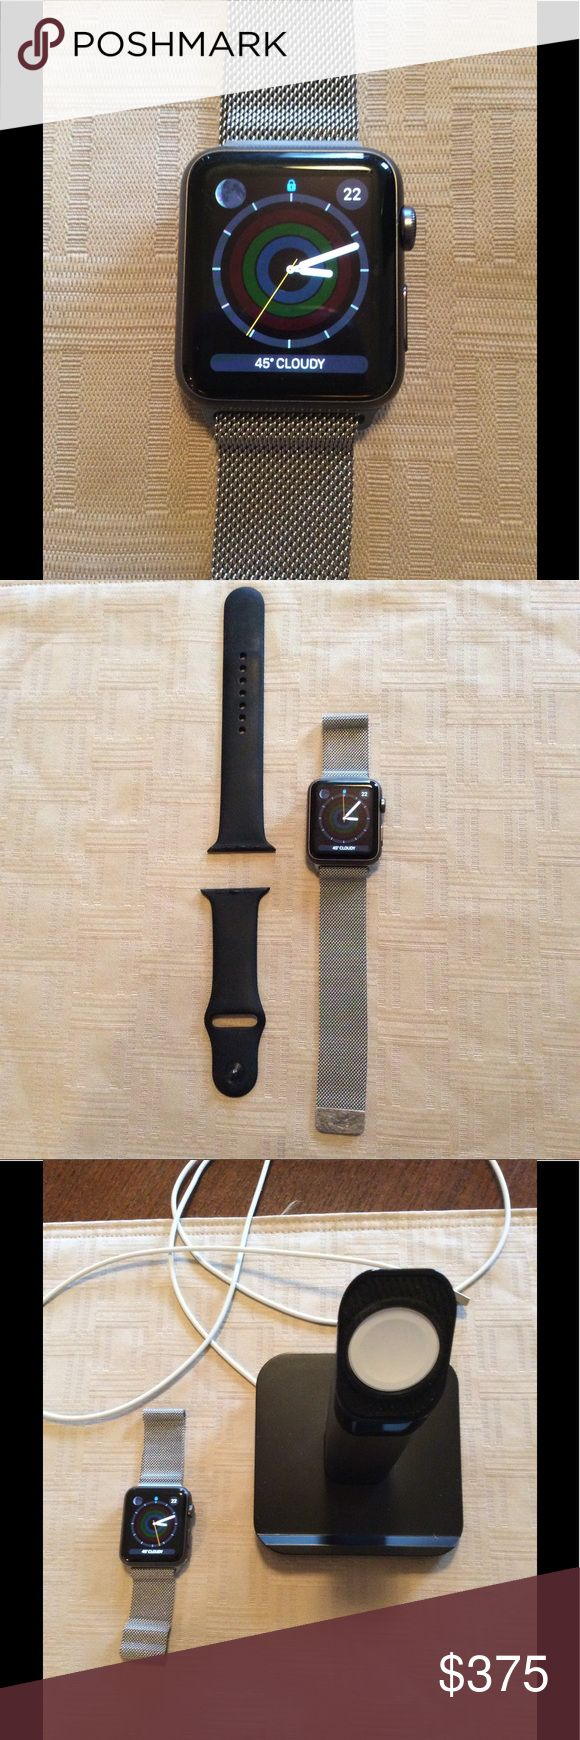 Apple Watch 1 BUNDLE!! Series 1, 42mm, space grey, perfect working condition. Comes with original rubber strap and Apple Milanese magnetic loop. Includes after market charging stand and cord. Original price of Milanese loop $149.  Very minimal wear, not visible to camera's eye. My husband gets tired of his toys quickly 😉 original protective plastic on band case. Apple Accessories Watches